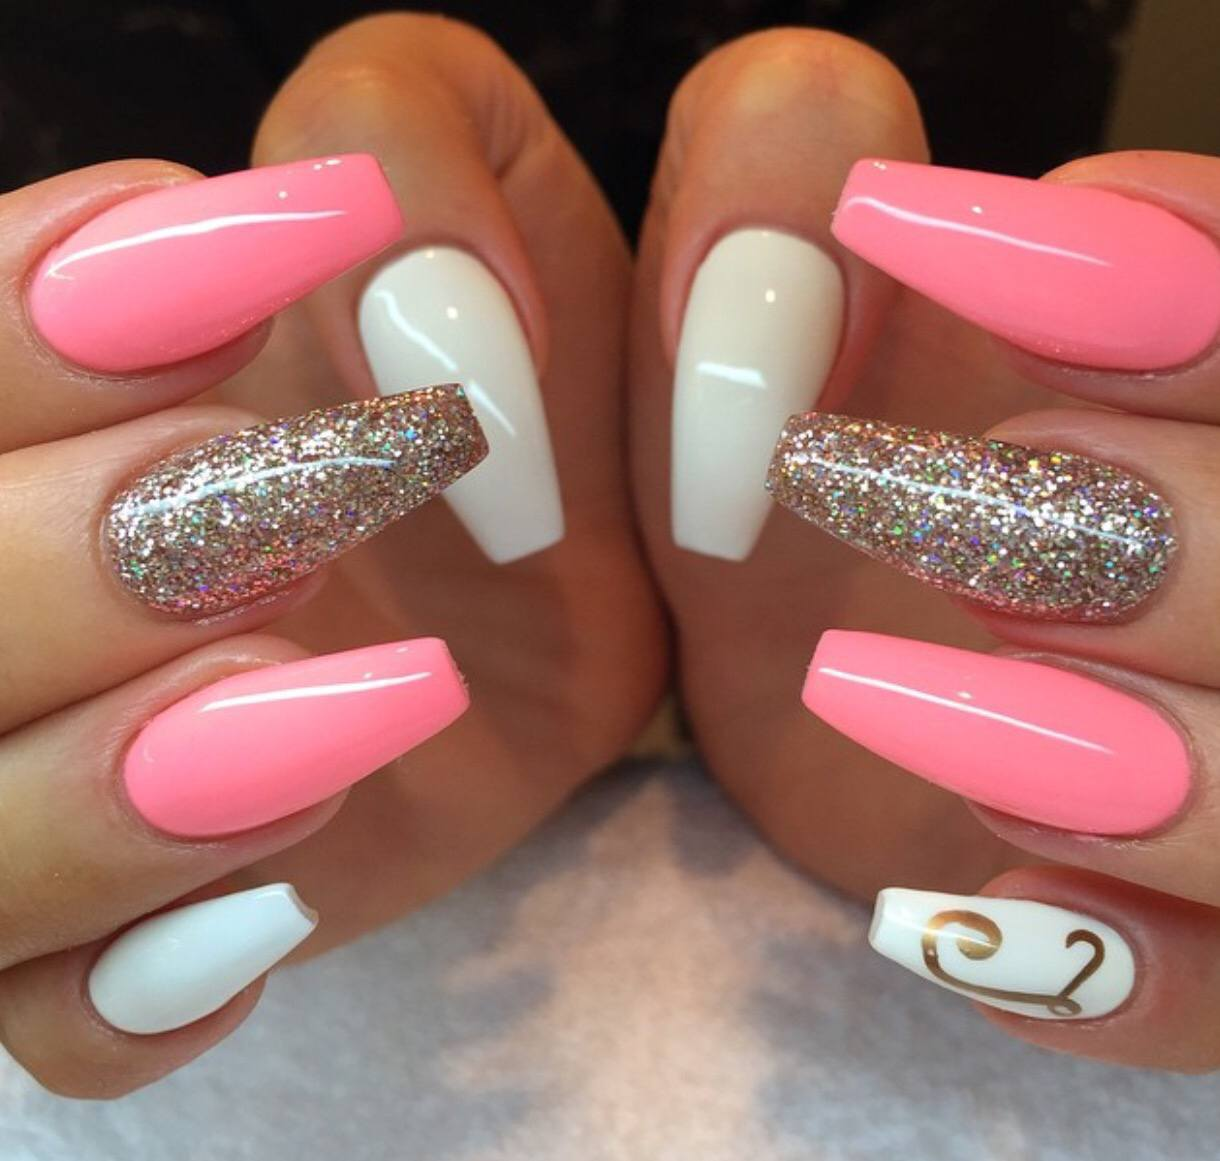 Nail Bar amp Spa located in Apple Valley Minnesota is a local nail spa that offers quality services including nail services spa pedicure gel manicure nail